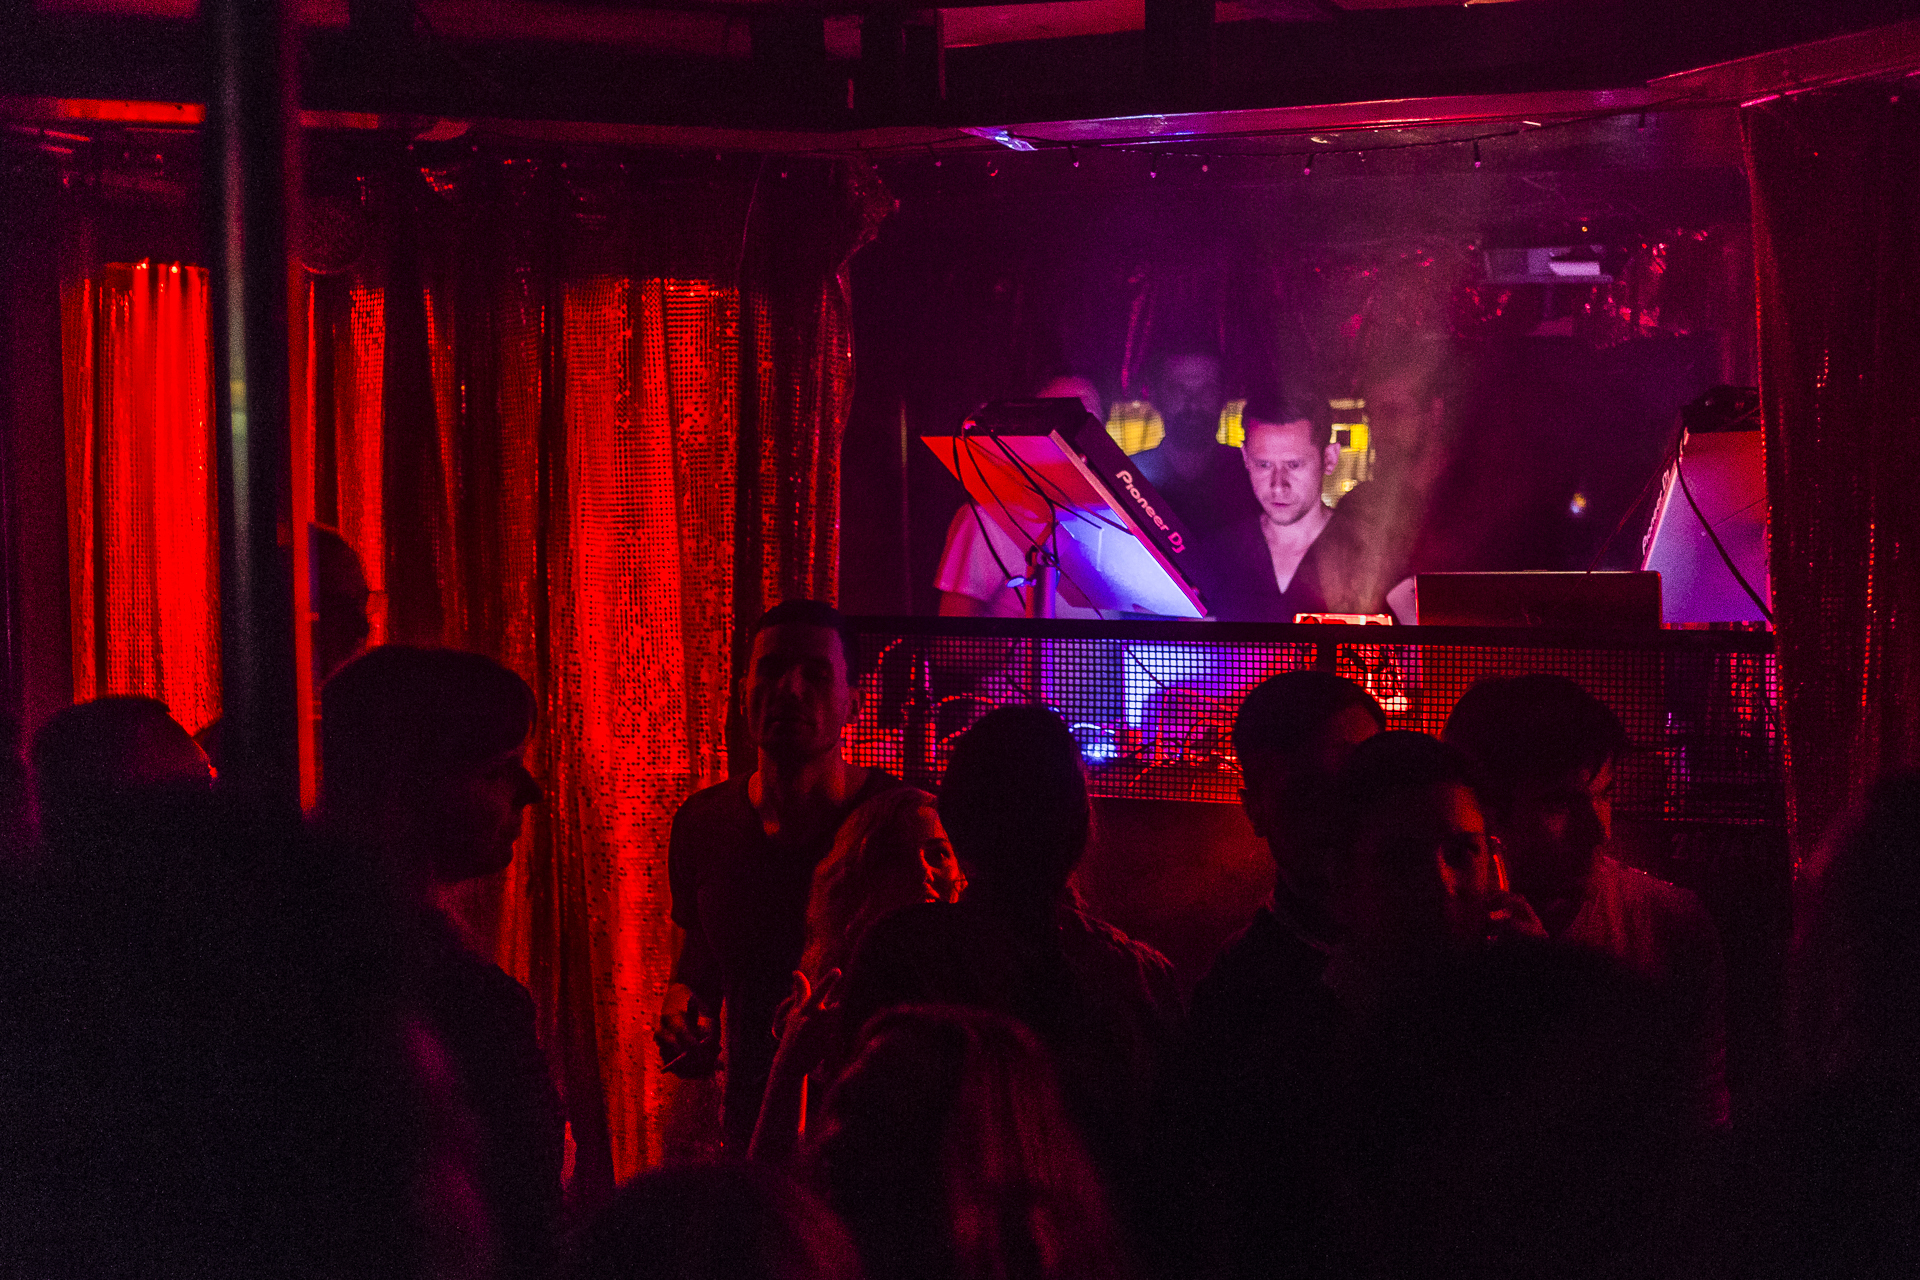 The Belgrade underground musical scene has been interesting and alive since the communist times through the nineties wars, and is now attracting turists from all over Europe